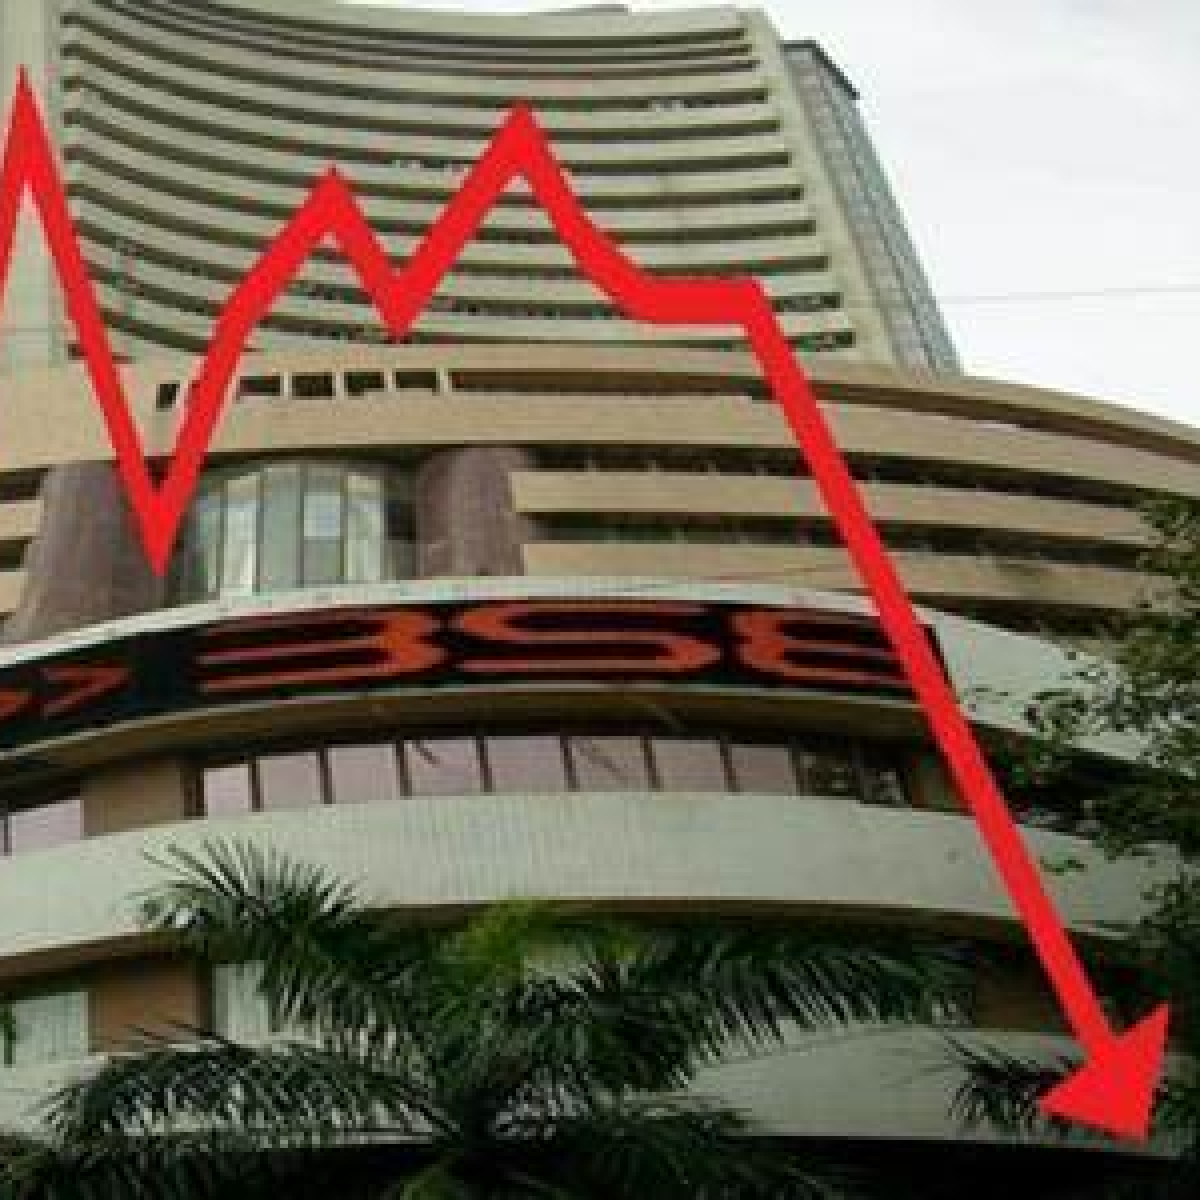 Bears tighten grip on D-St, Sensex plunges 793 points after Budget announcements